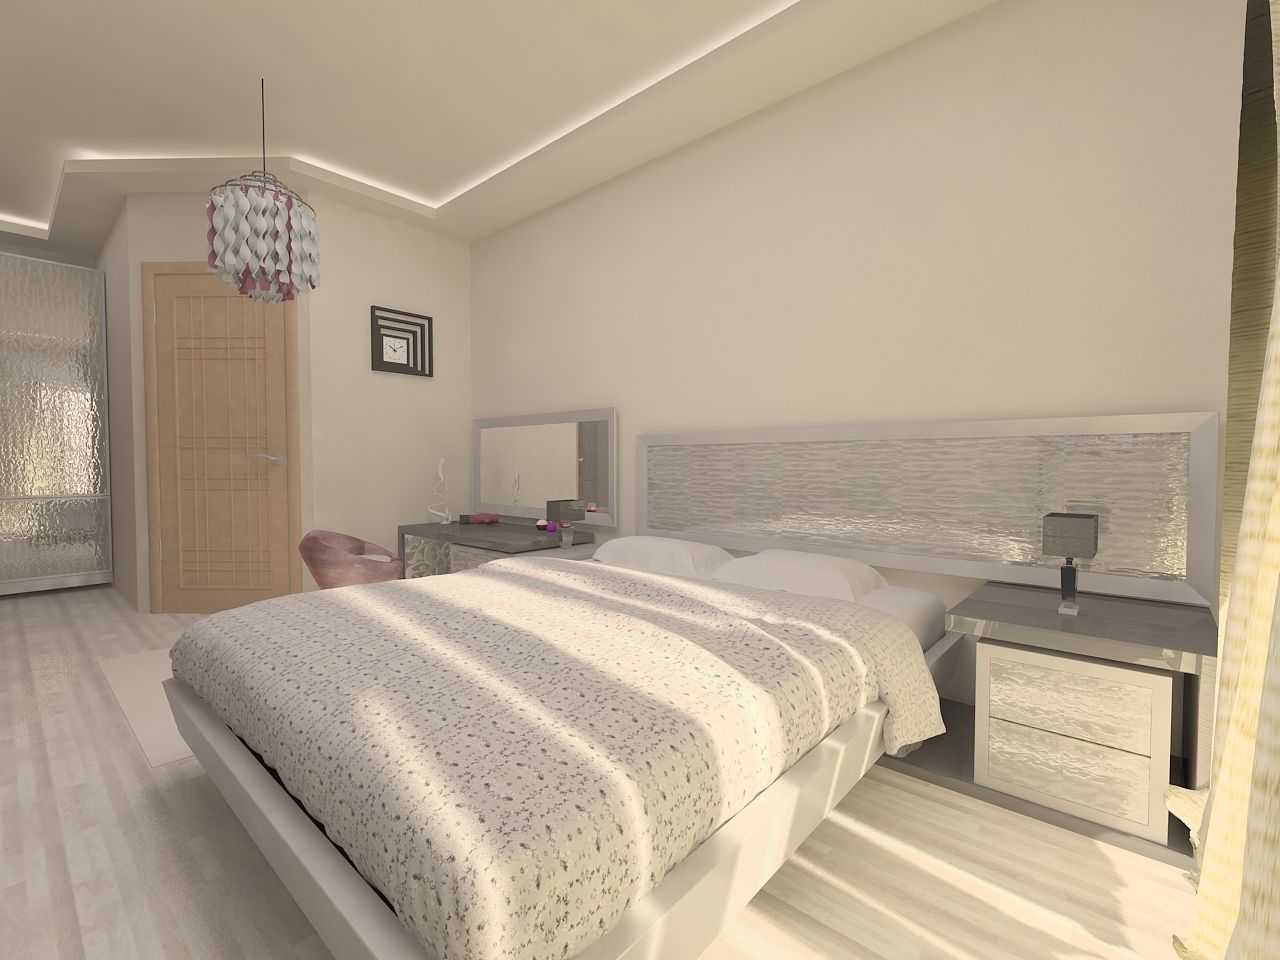 Bedroom design 3D Model MAX | CGTrader.com on Model Bedroom Ideas  id=18386